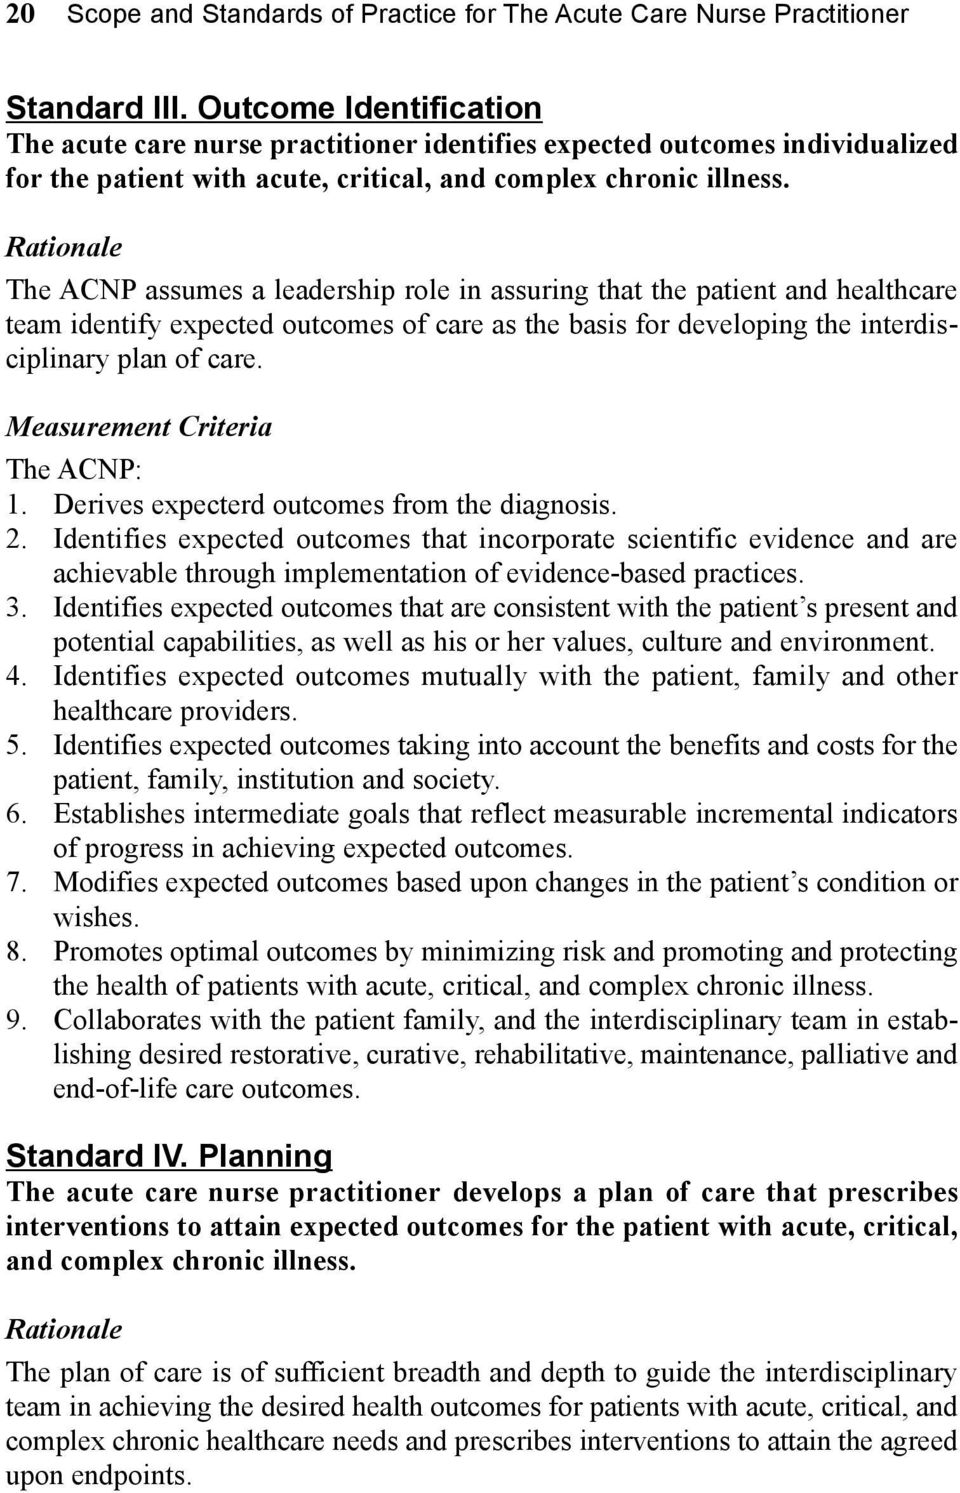 The ACNP assumes a leadership role in assuring that the patient and healthcare team identify expected outcomes of care as the basis for developing the interdisciplinary plan of care. 1.